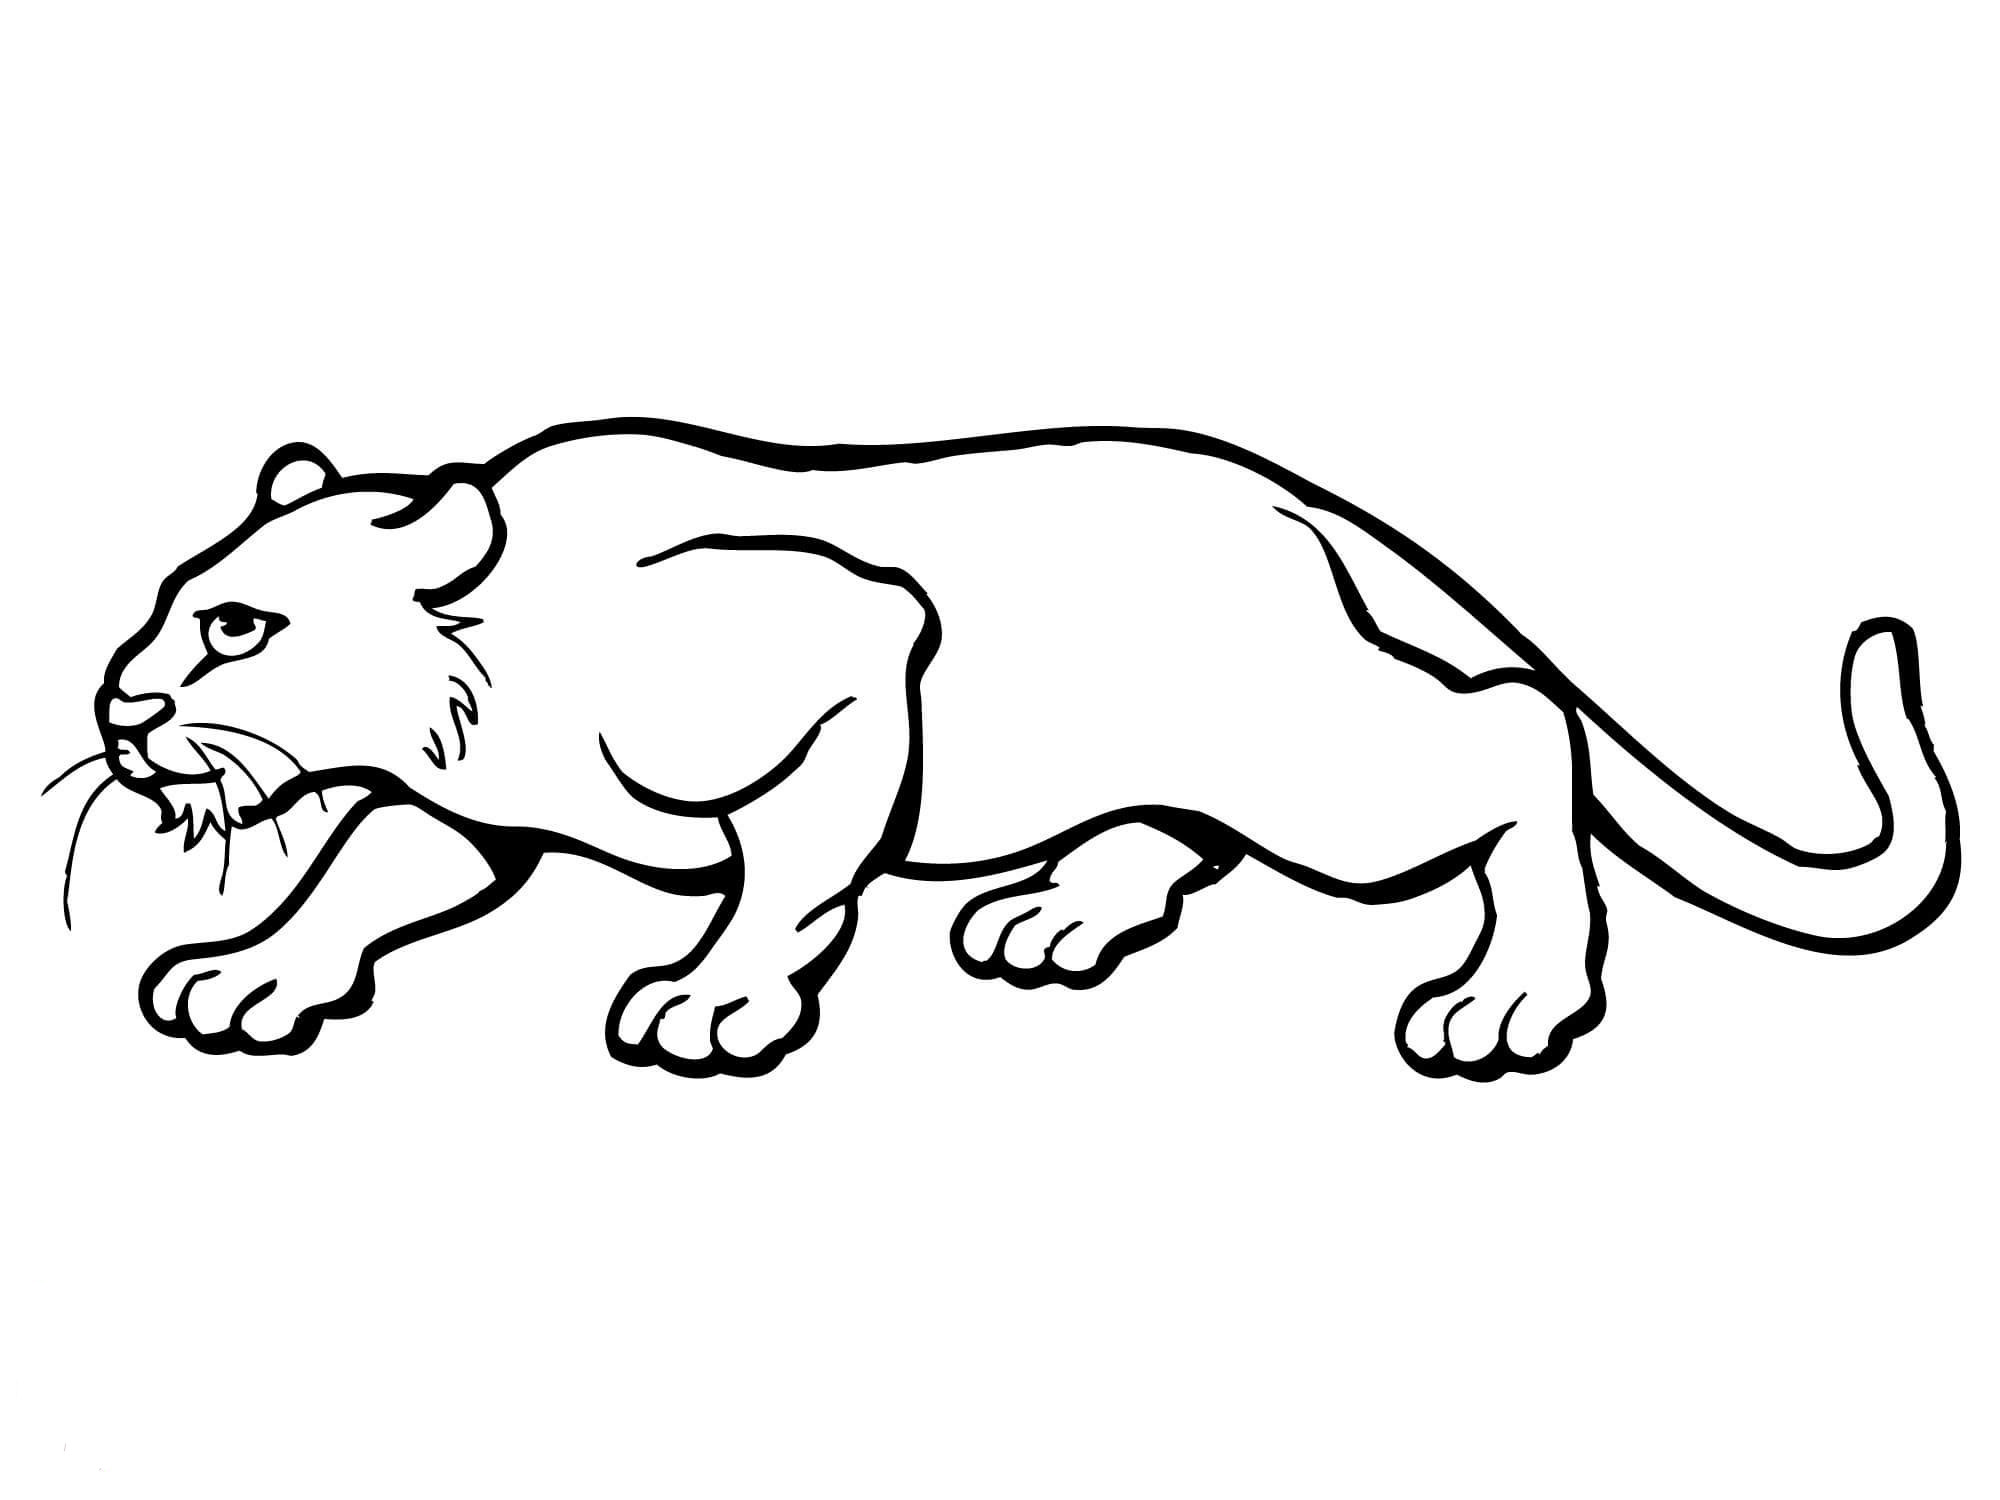 Puma coloring pages to download